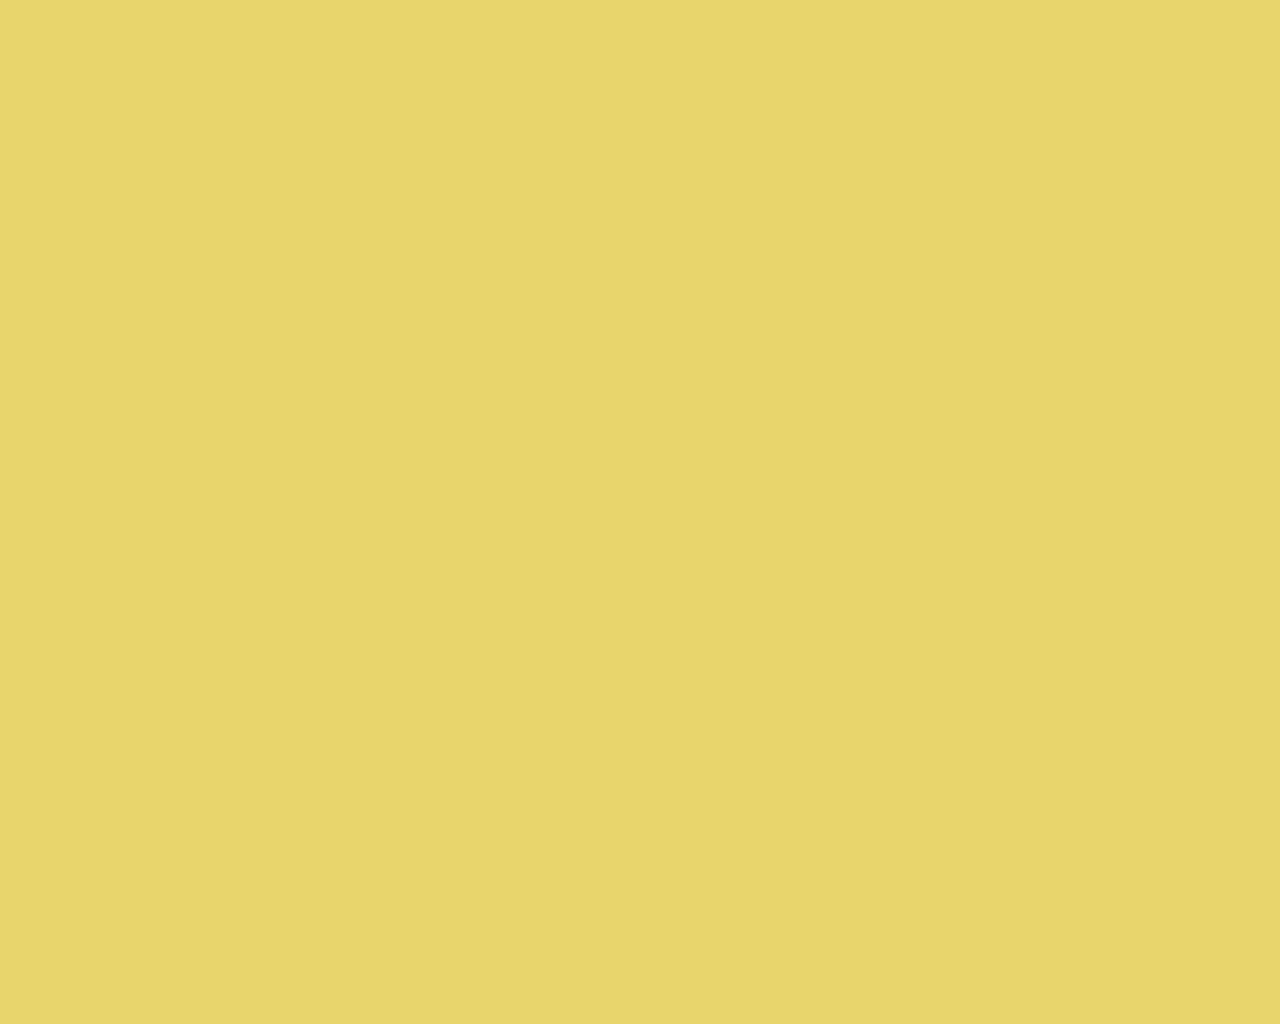 1280x1024 Hansa Yellow Solid Color Background